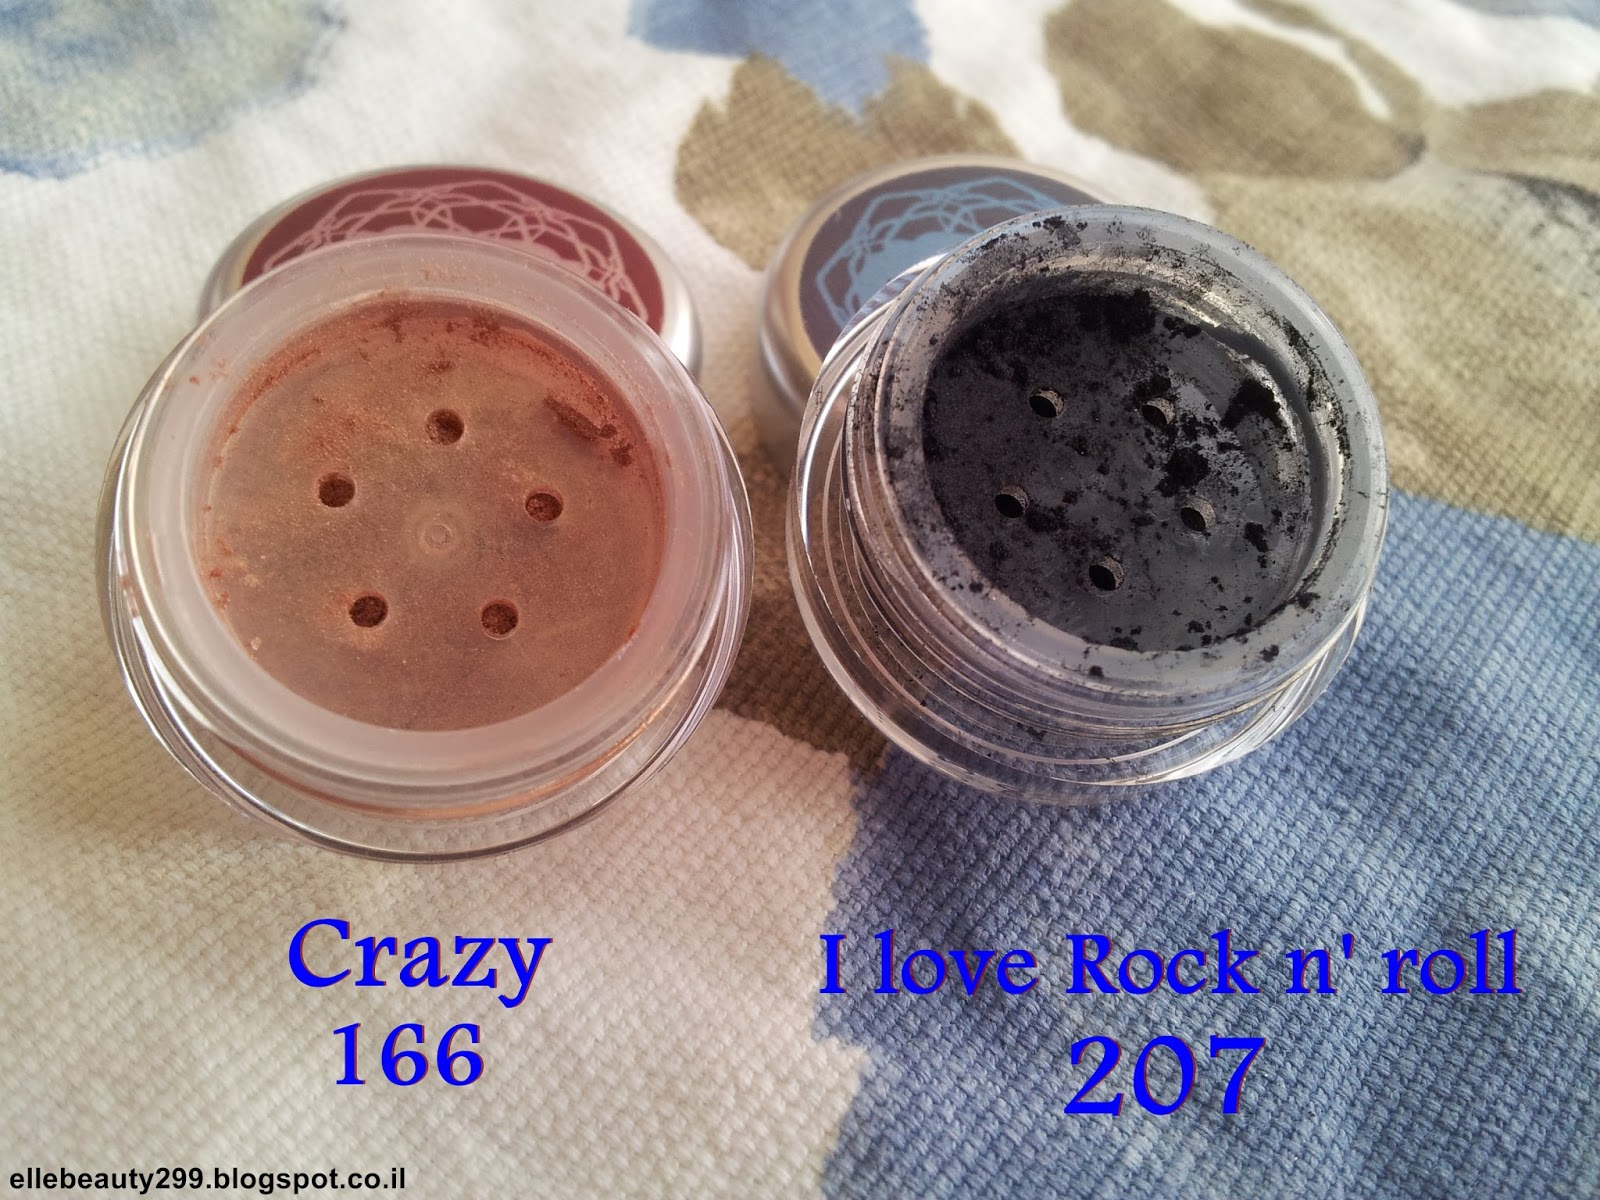 Crazy 166 mineral eyeshadow